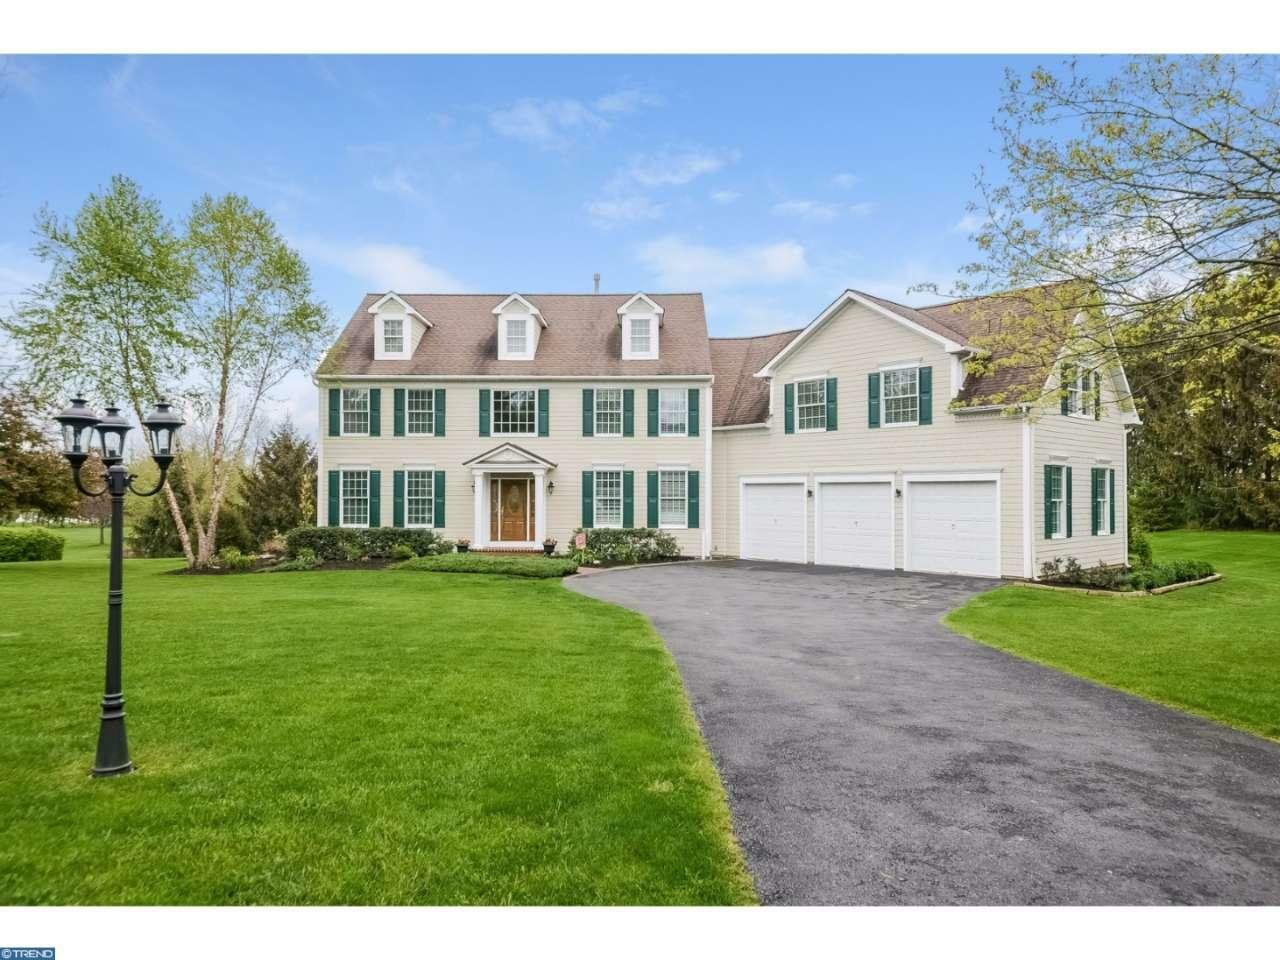 5215 Deborah Ct, Doylestown, PA - USA (photo 2)